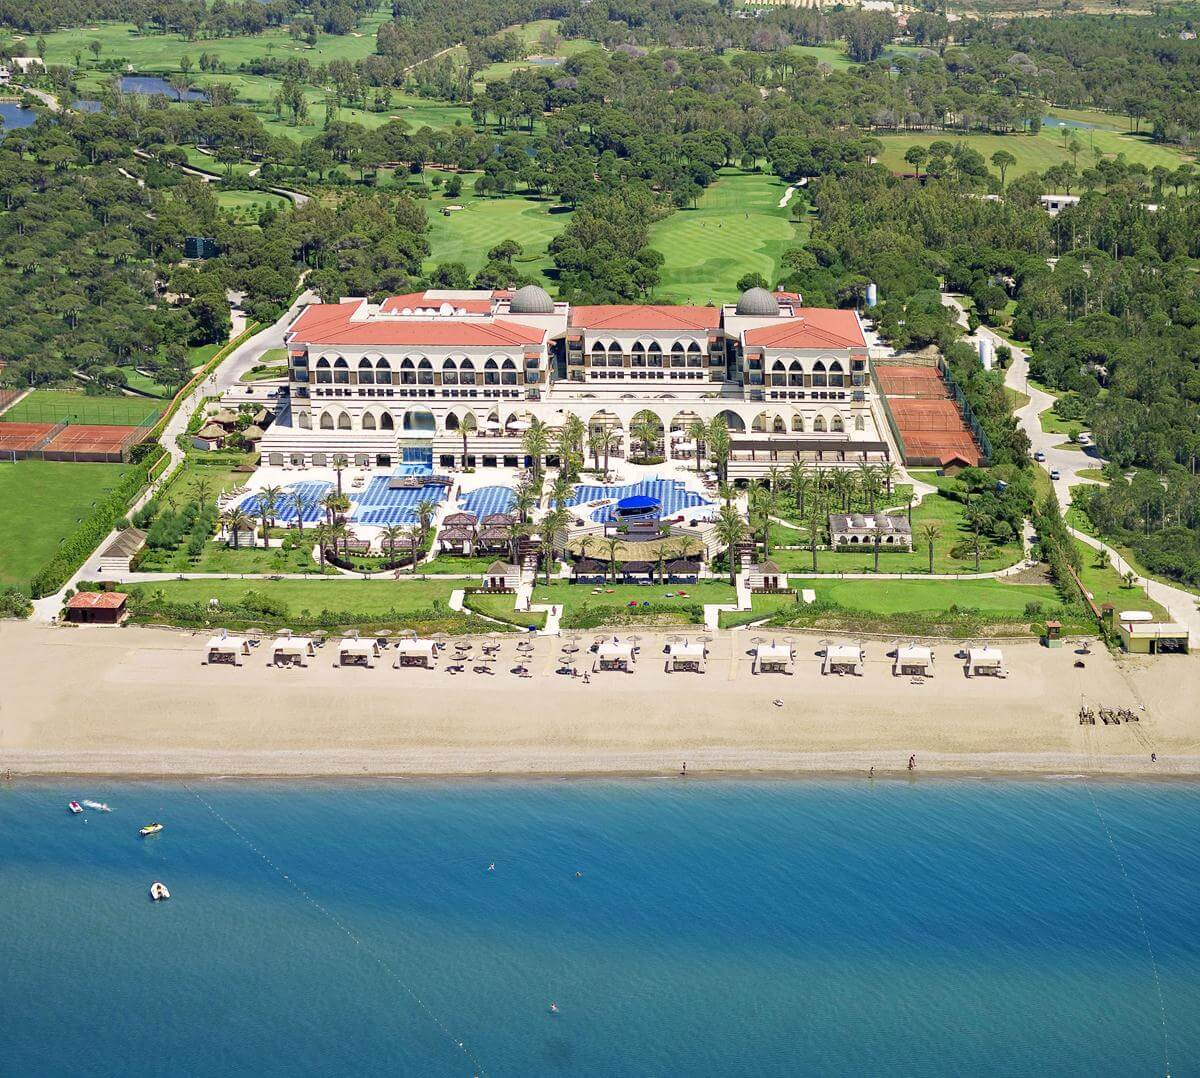 TURKEY - ALL INCLUSIVE - 5* Kempinski Hotel The Dome